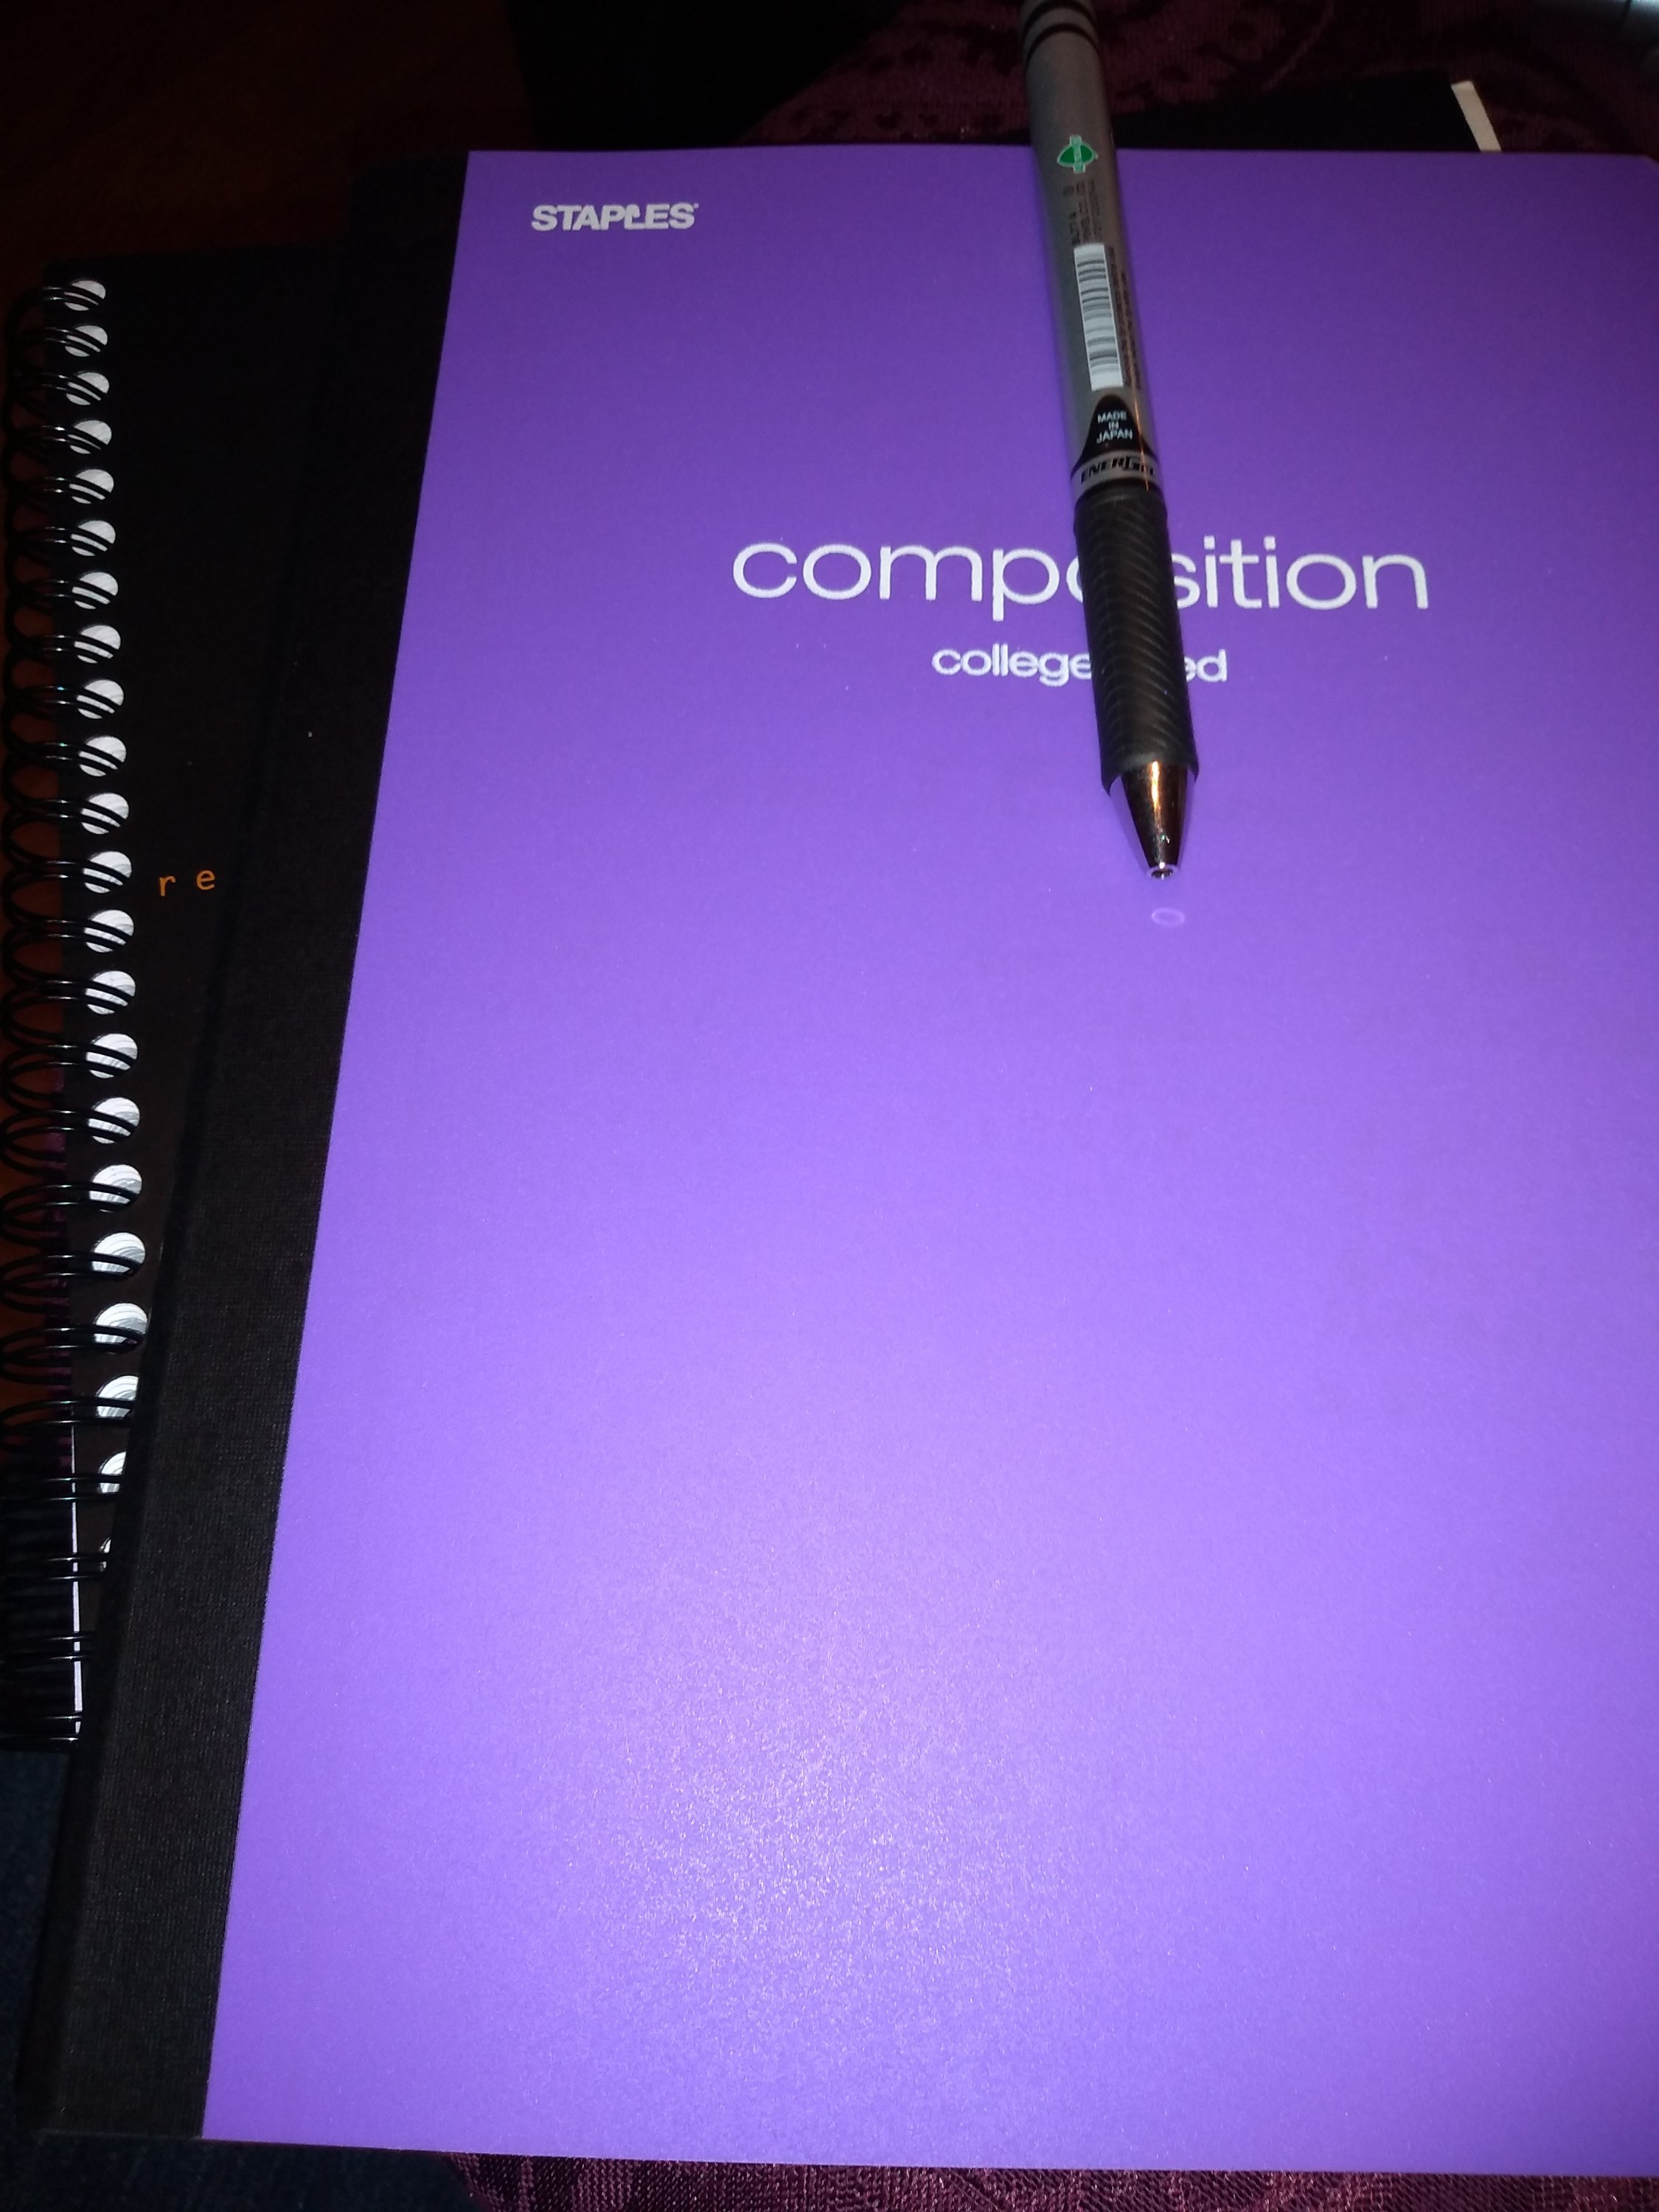 Two notebooks, one purple with a pen clipped to it and one black spiral notebook under the purple one